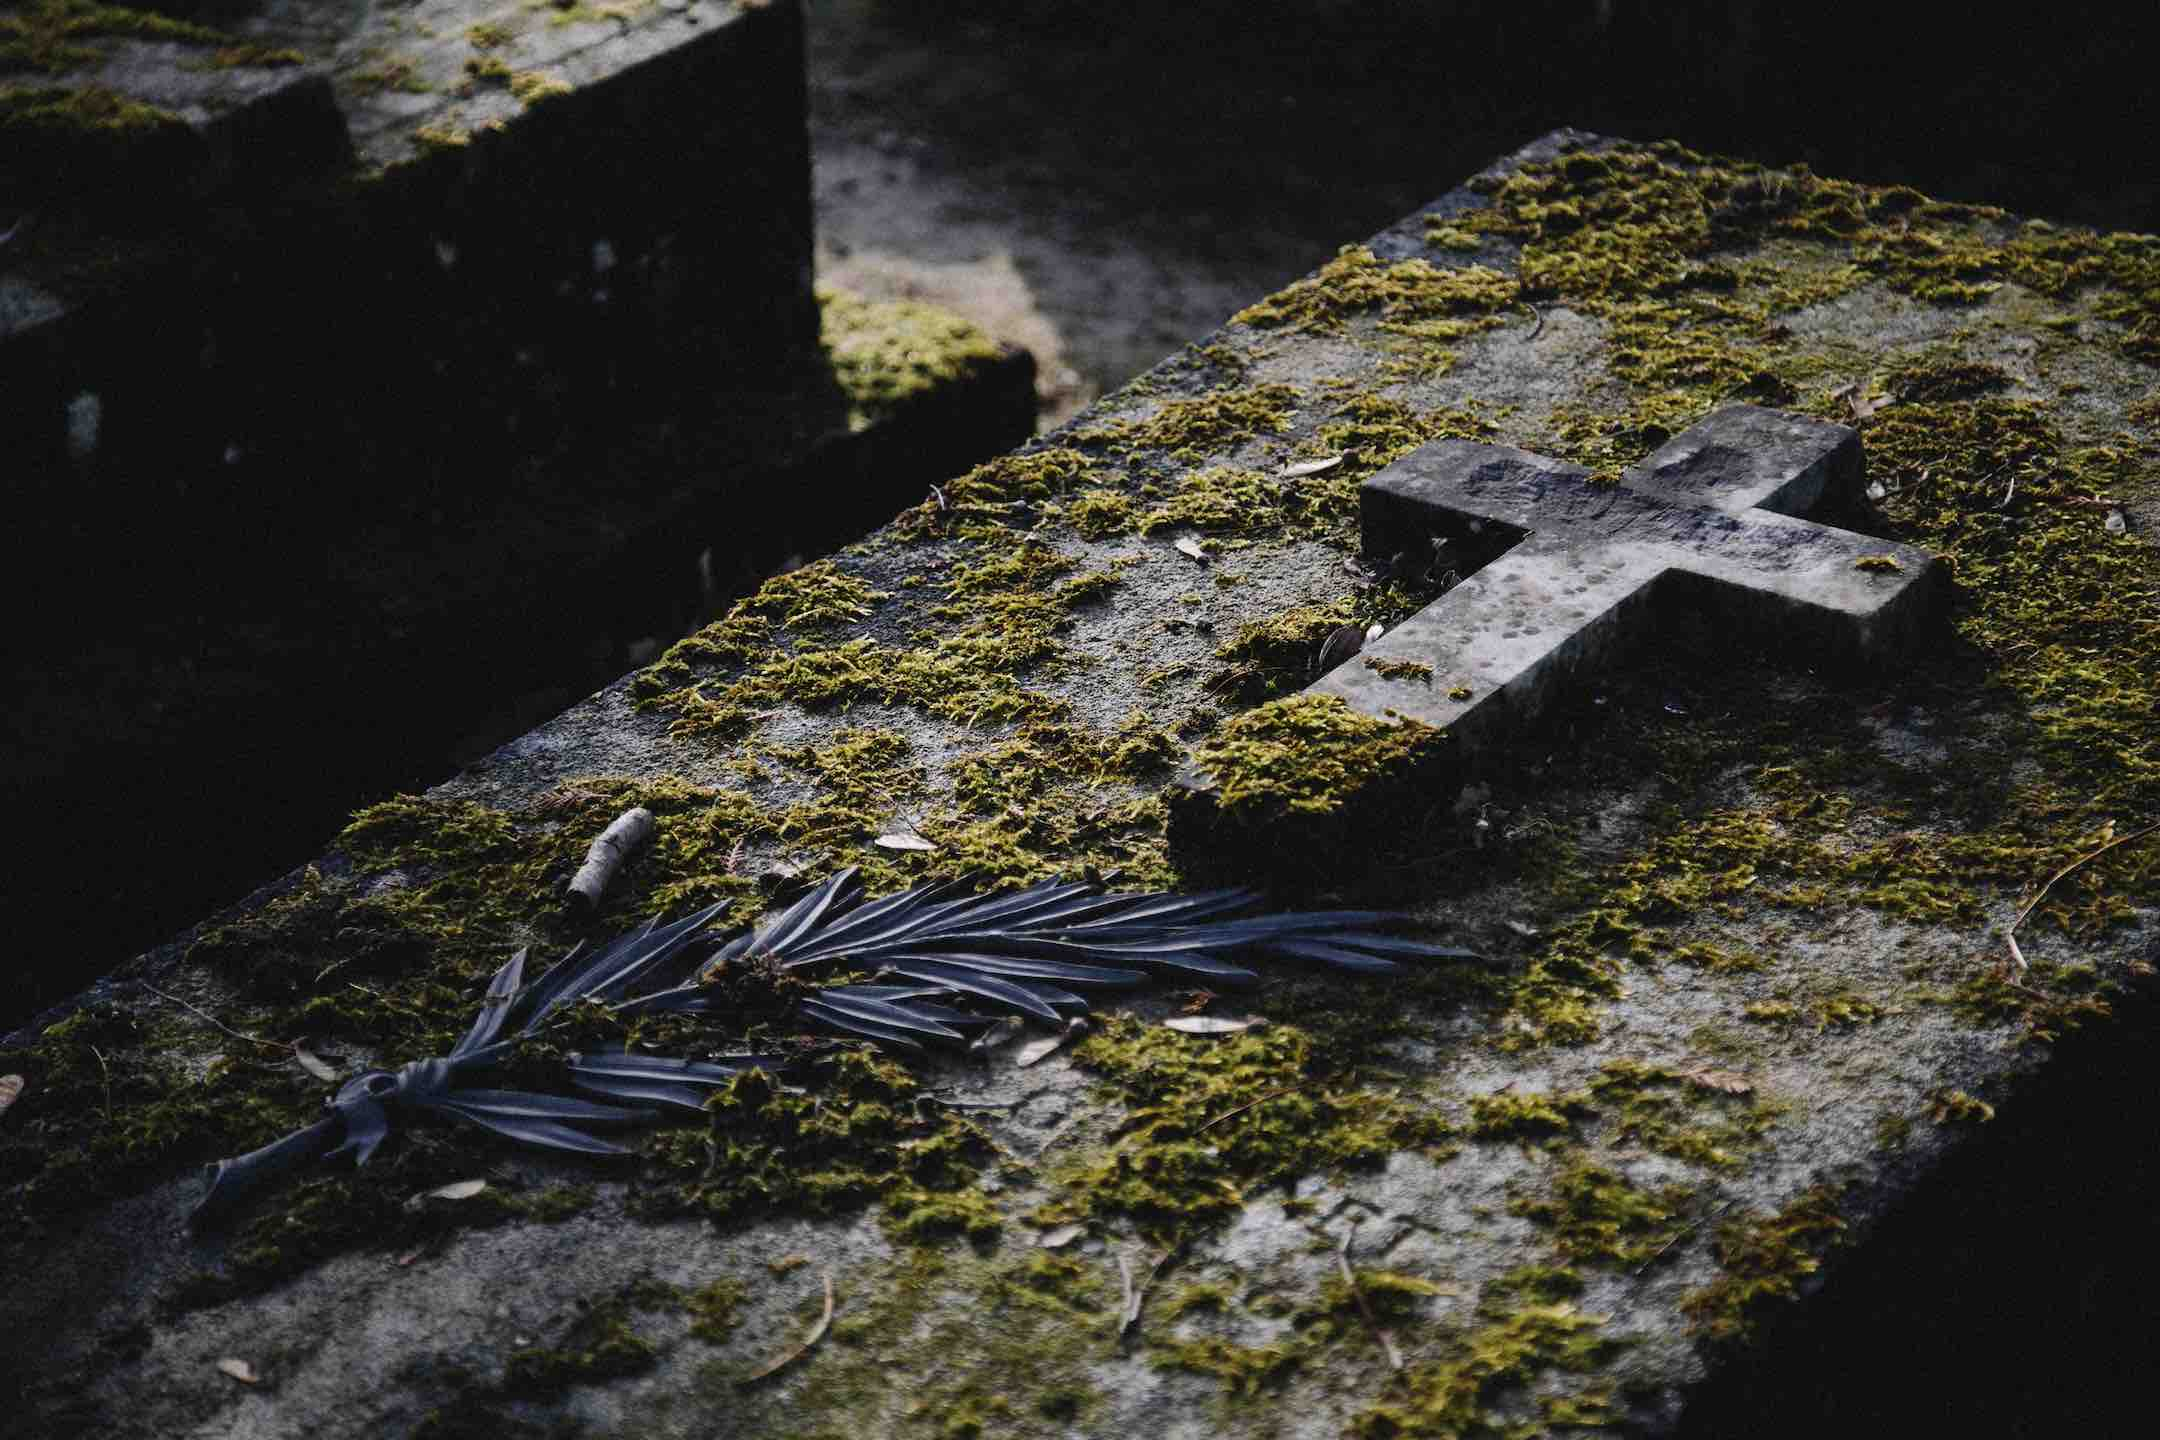 The Pére Lachaise Cemetery is the final resting place if many writers kenny-orr-1AVTo_bdHWs-unsplash copy